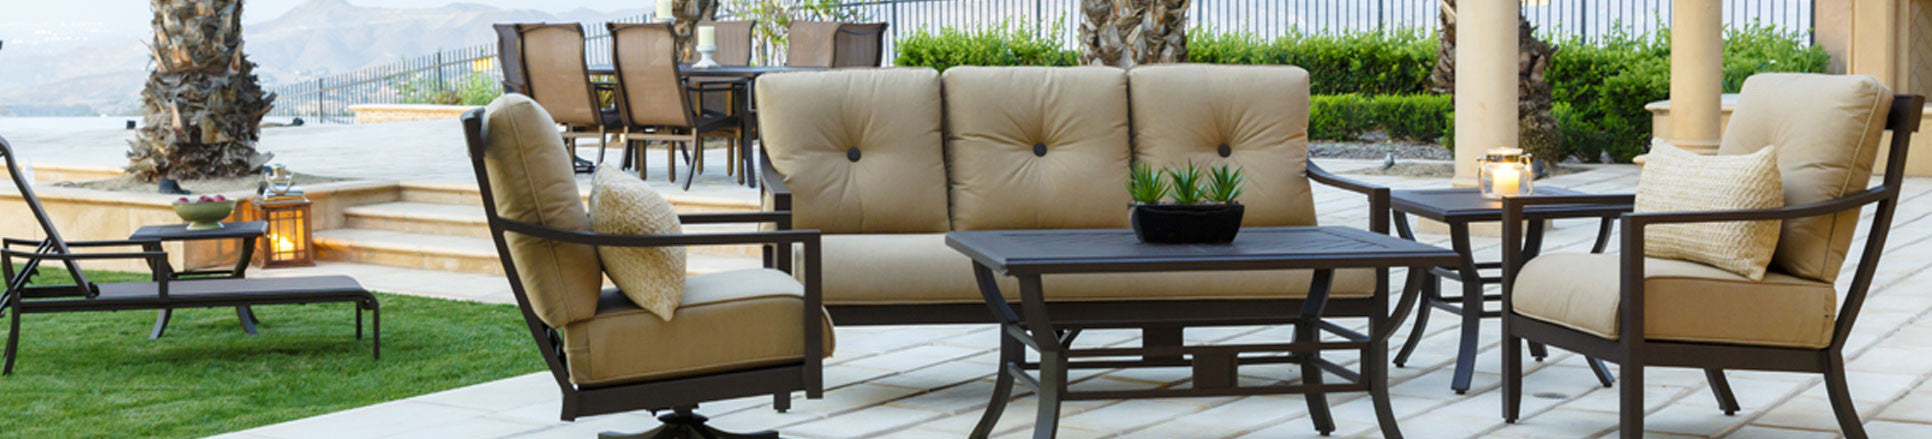 Outdoor Seating Outdoor Furniture San Diego Page 12 Skylar S Home And Patio